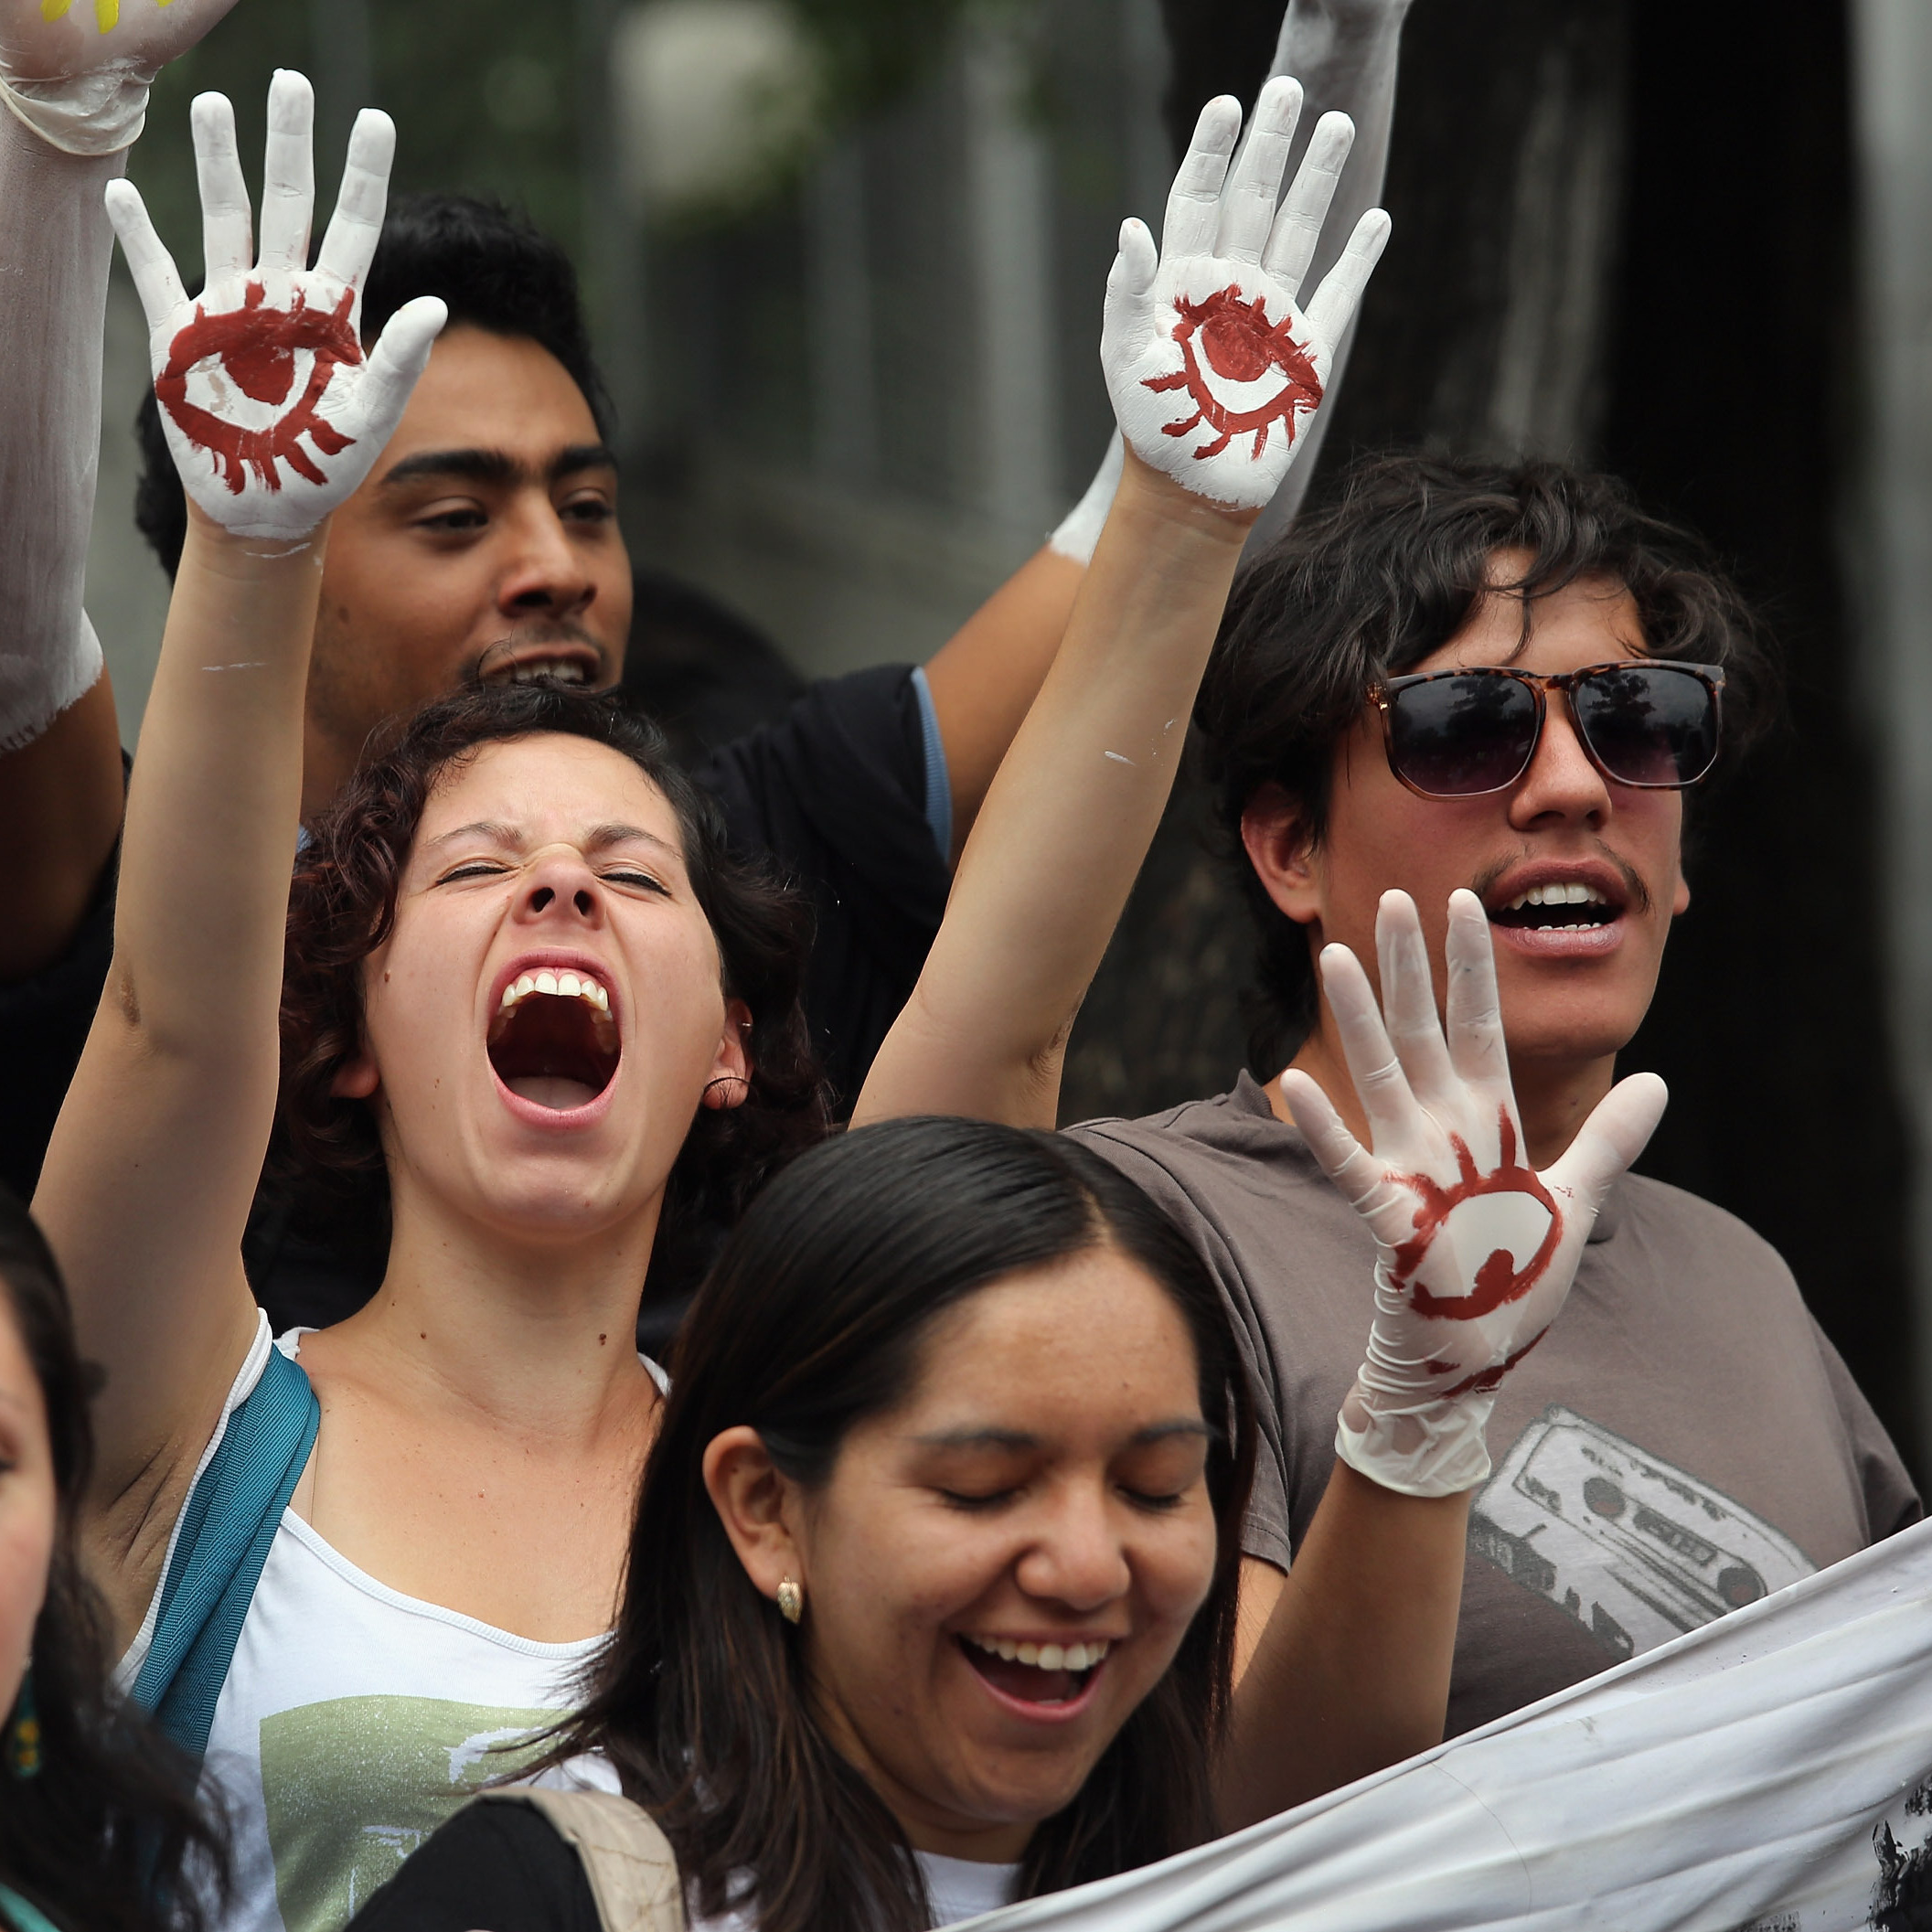 Student protesters stage a demonstration calling for electoral transparency in front of Mexico's Federal Election Commission.